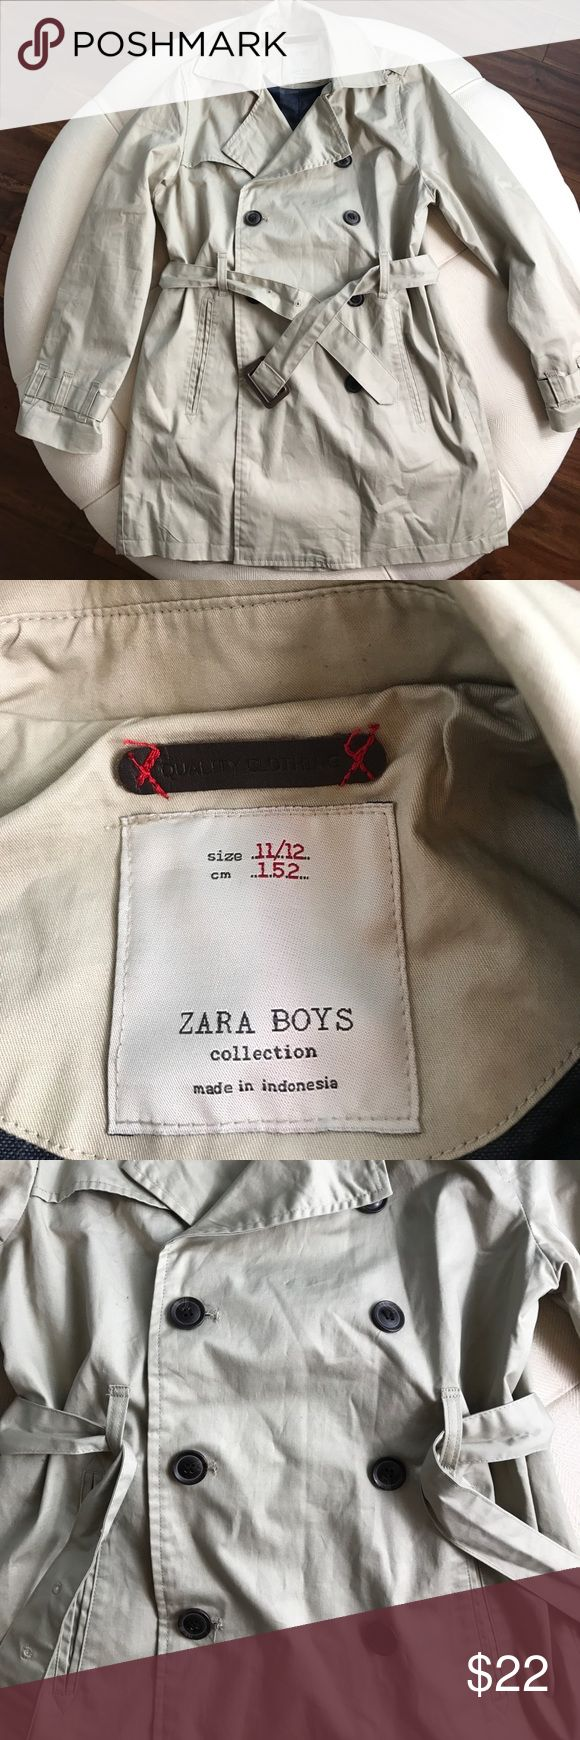 Zara Boyd Trench Coat Size 11/12 Fully lined Boys coat. Front pockets and button and belt closure. Sooo cute! Small mark in the front that will easily come off. The coat is in great condition. Zara Jackets & Coats